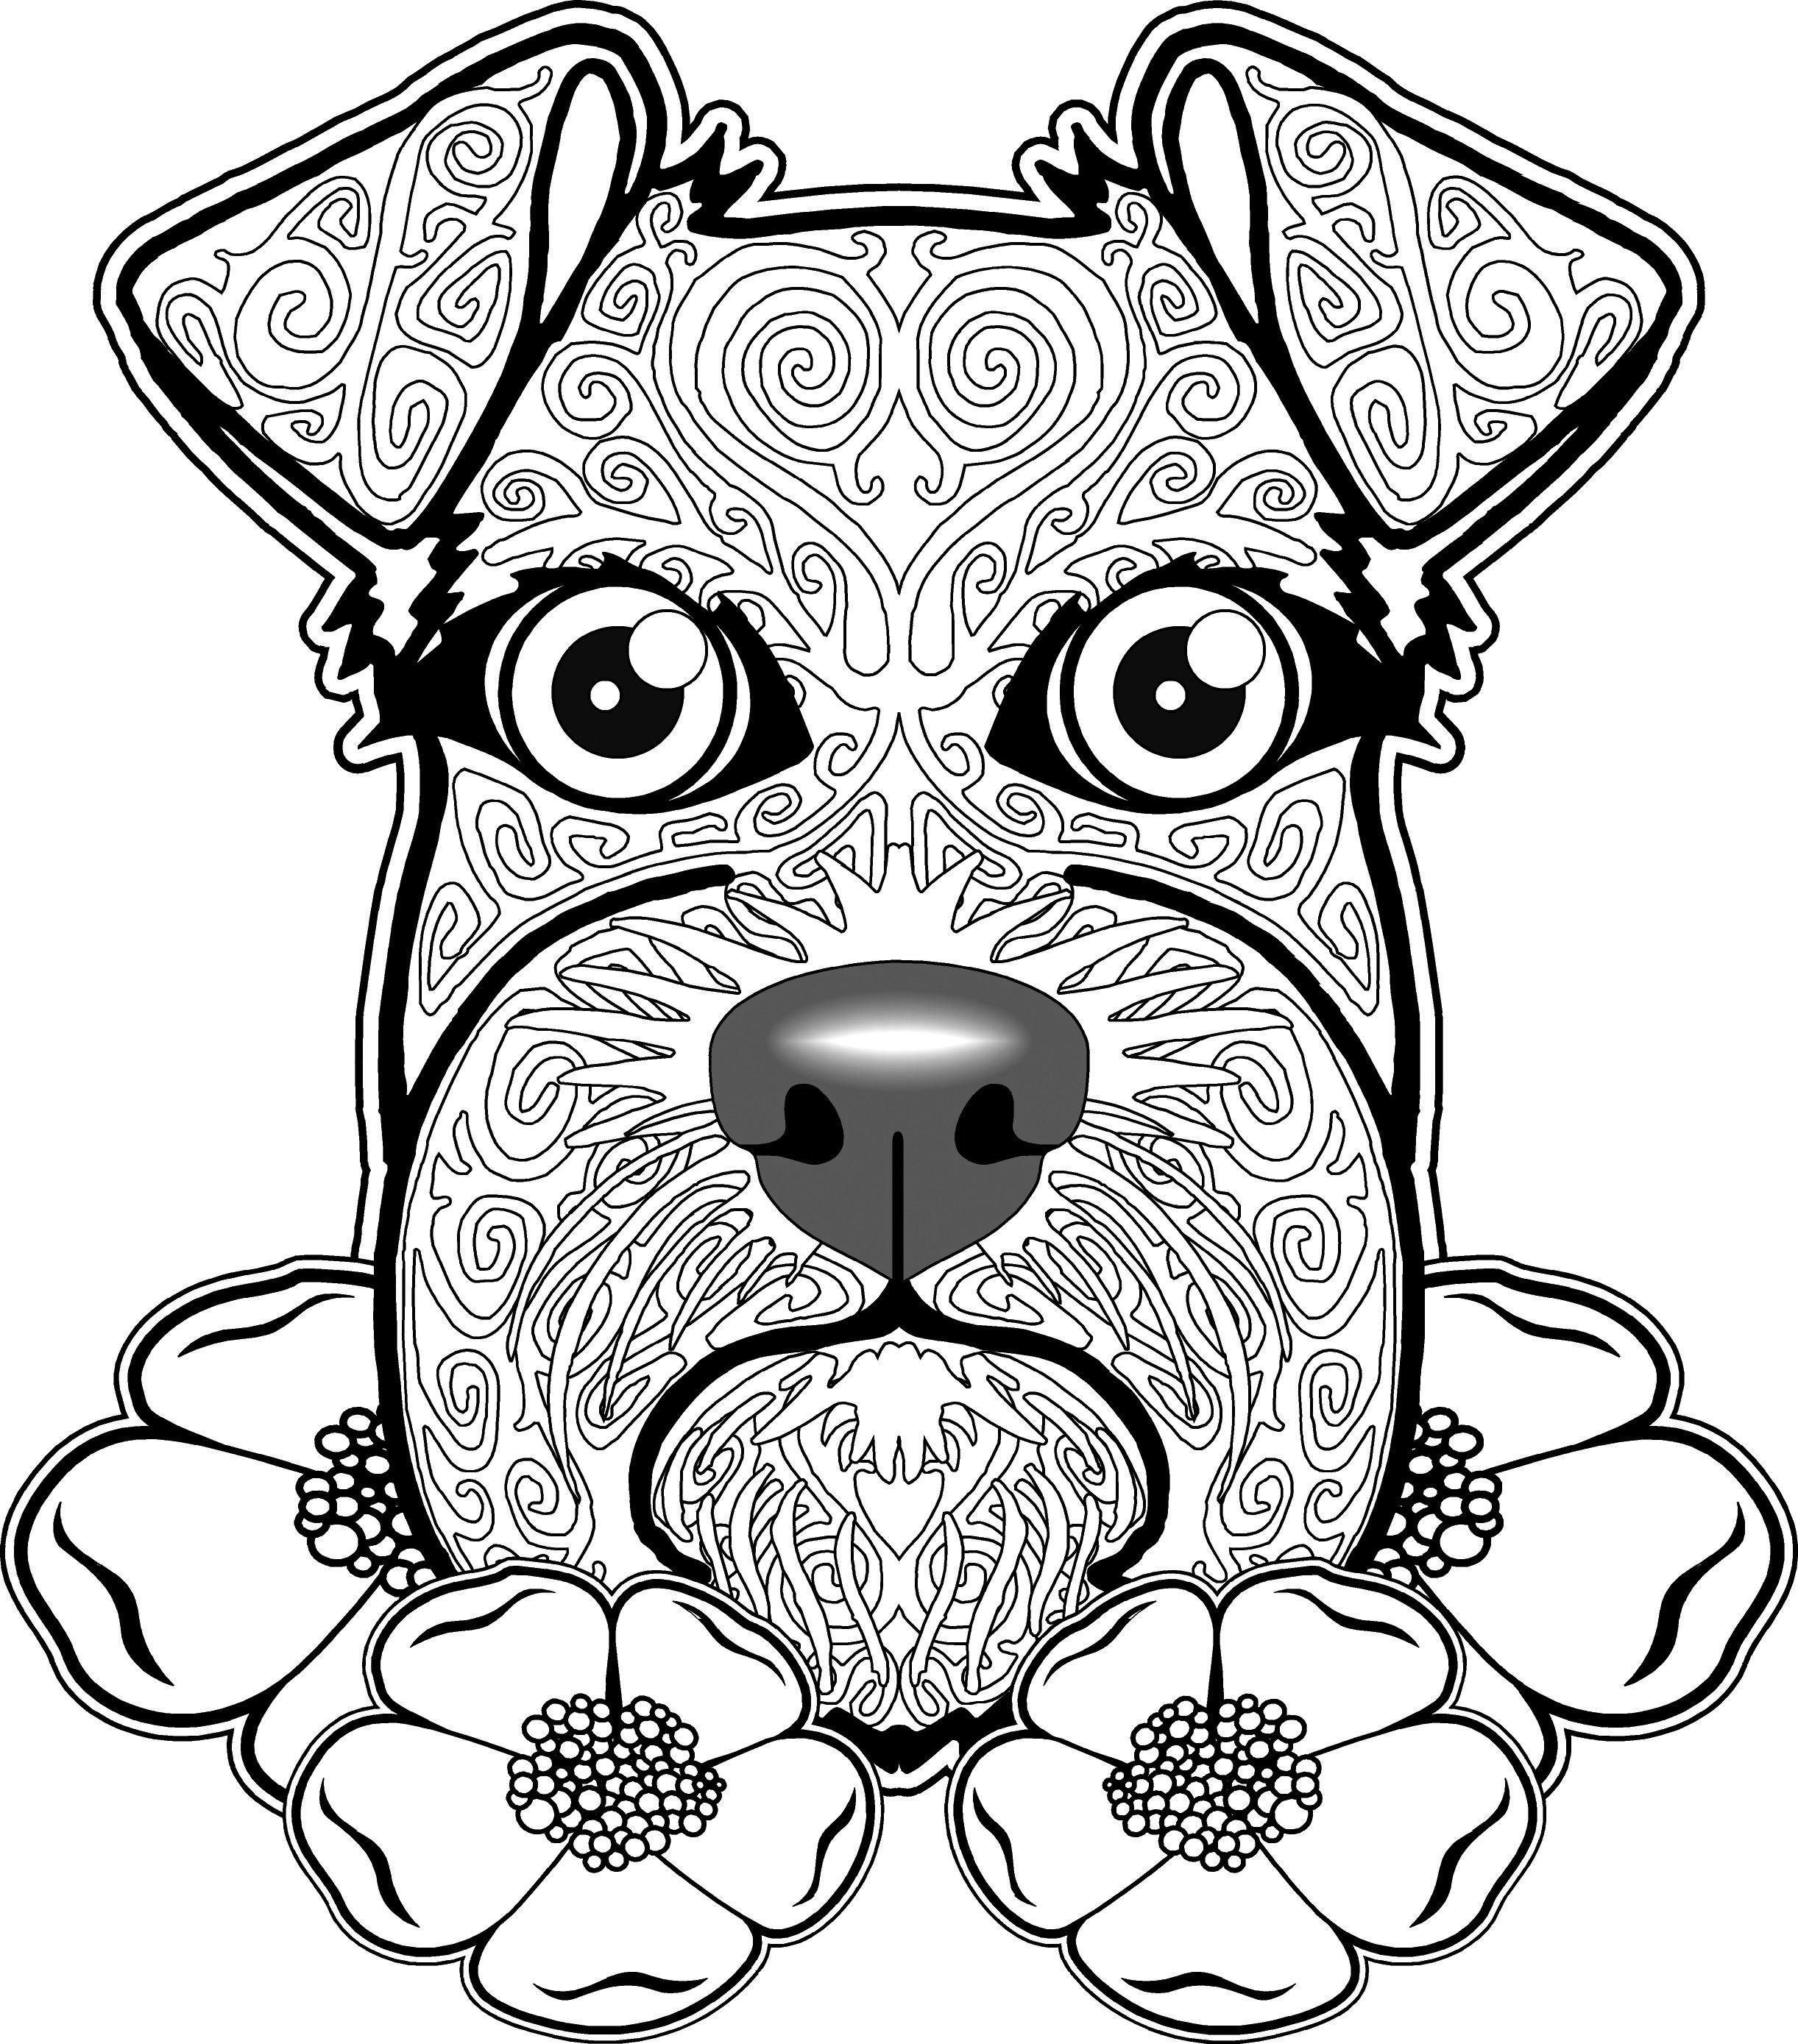 Best ideas about Dogs Coloring Pages For Adults . Save or Pin Adult Coloring Pages Dog Download Free Coloring Books Now.